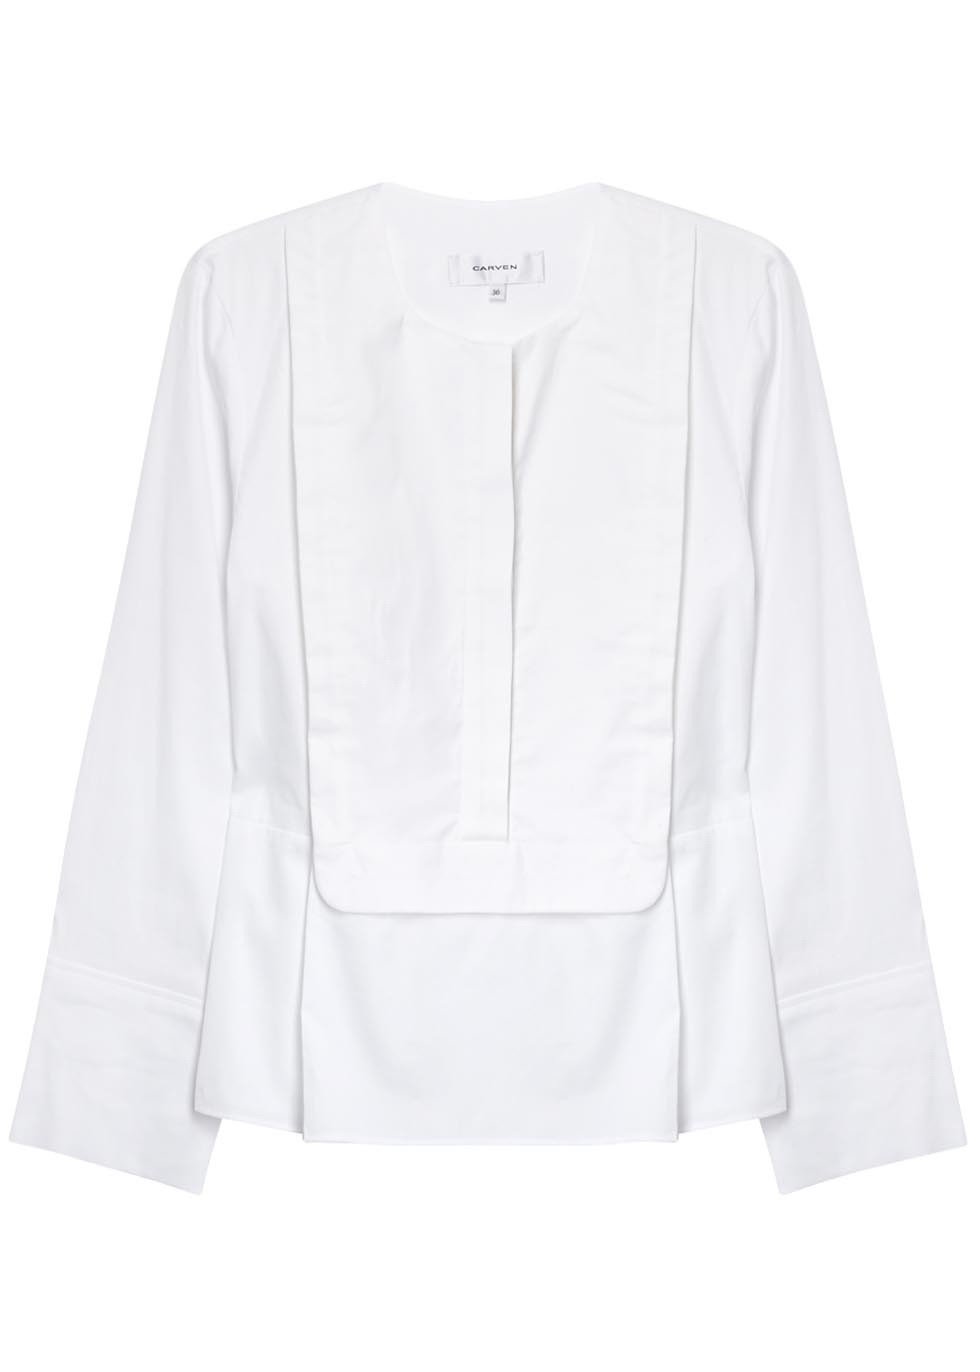 White Bibbed Cotton Poplin Blouse - pattern: plain; predominant colour: white; occasions: work; length: standard; style: top; fibres: cotton - 100%; fit: body skimming; neckline: crew; sleeve length: long sleeve; sleeve style: standard; texture group: cotton feel fabrics; pattern type: fabric; season: s/s 2016; wardrobe: basic